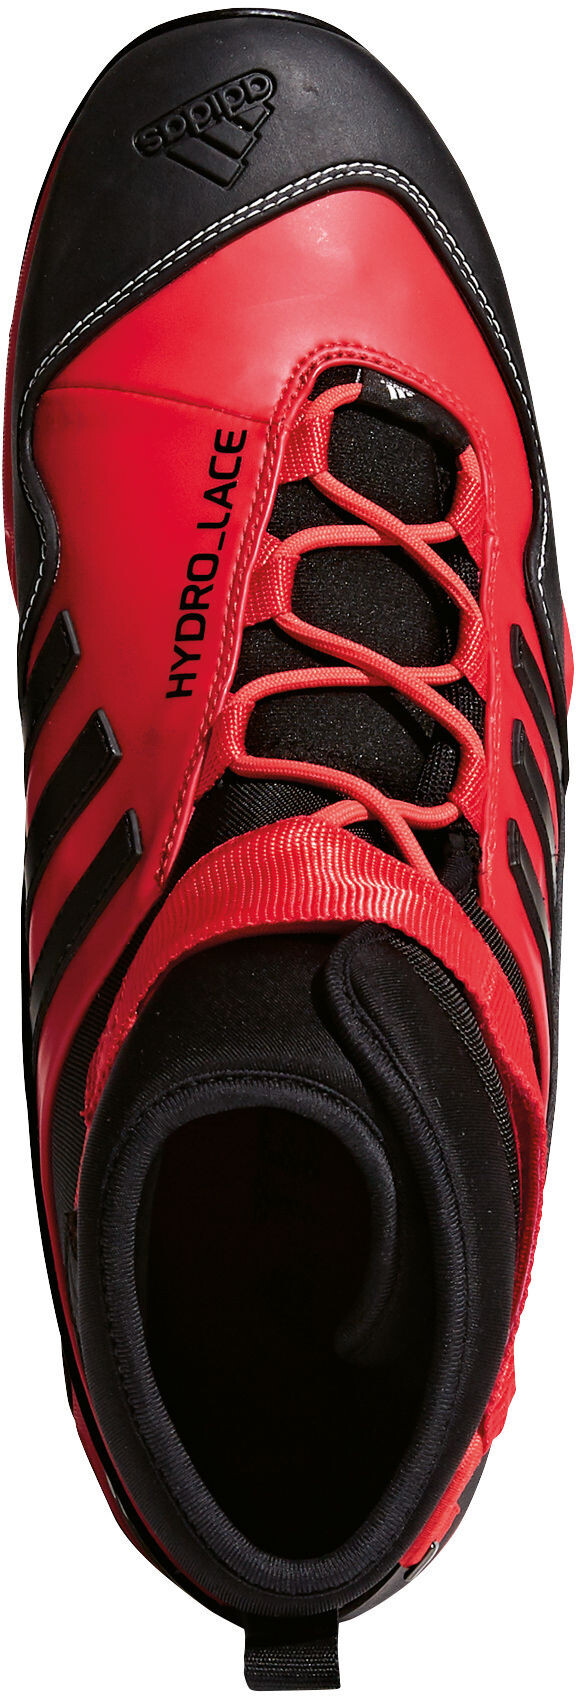 online store 8a75f 44125 adidas TERREX Hydro Lace - Chaussures - rougenoir